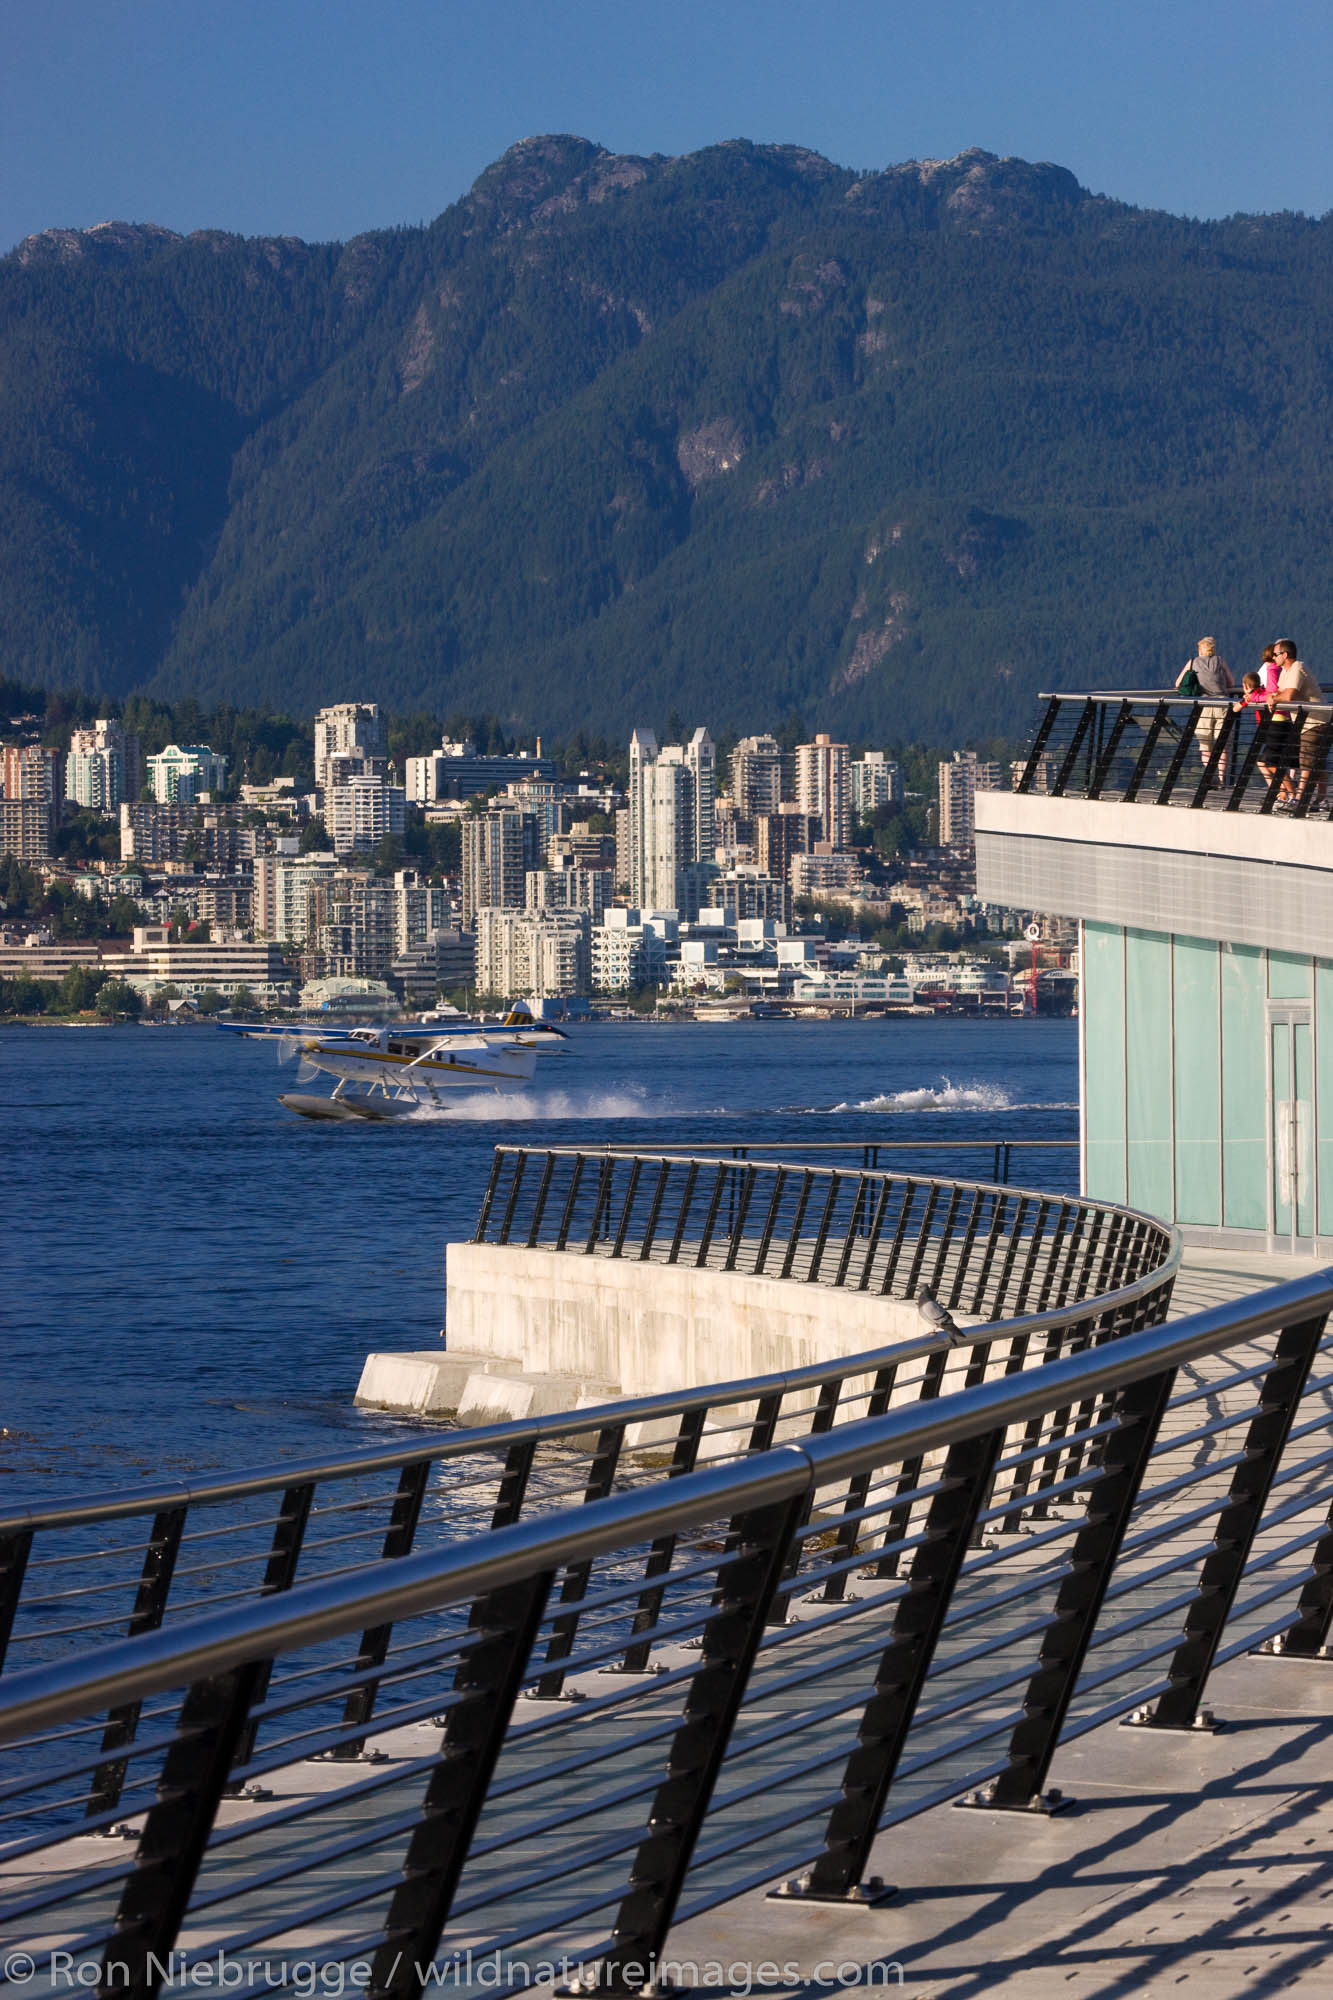 Looking across Coal Harbour towards North Vancouver from the Convention Center, Vancouver, British Columbia, Canada.